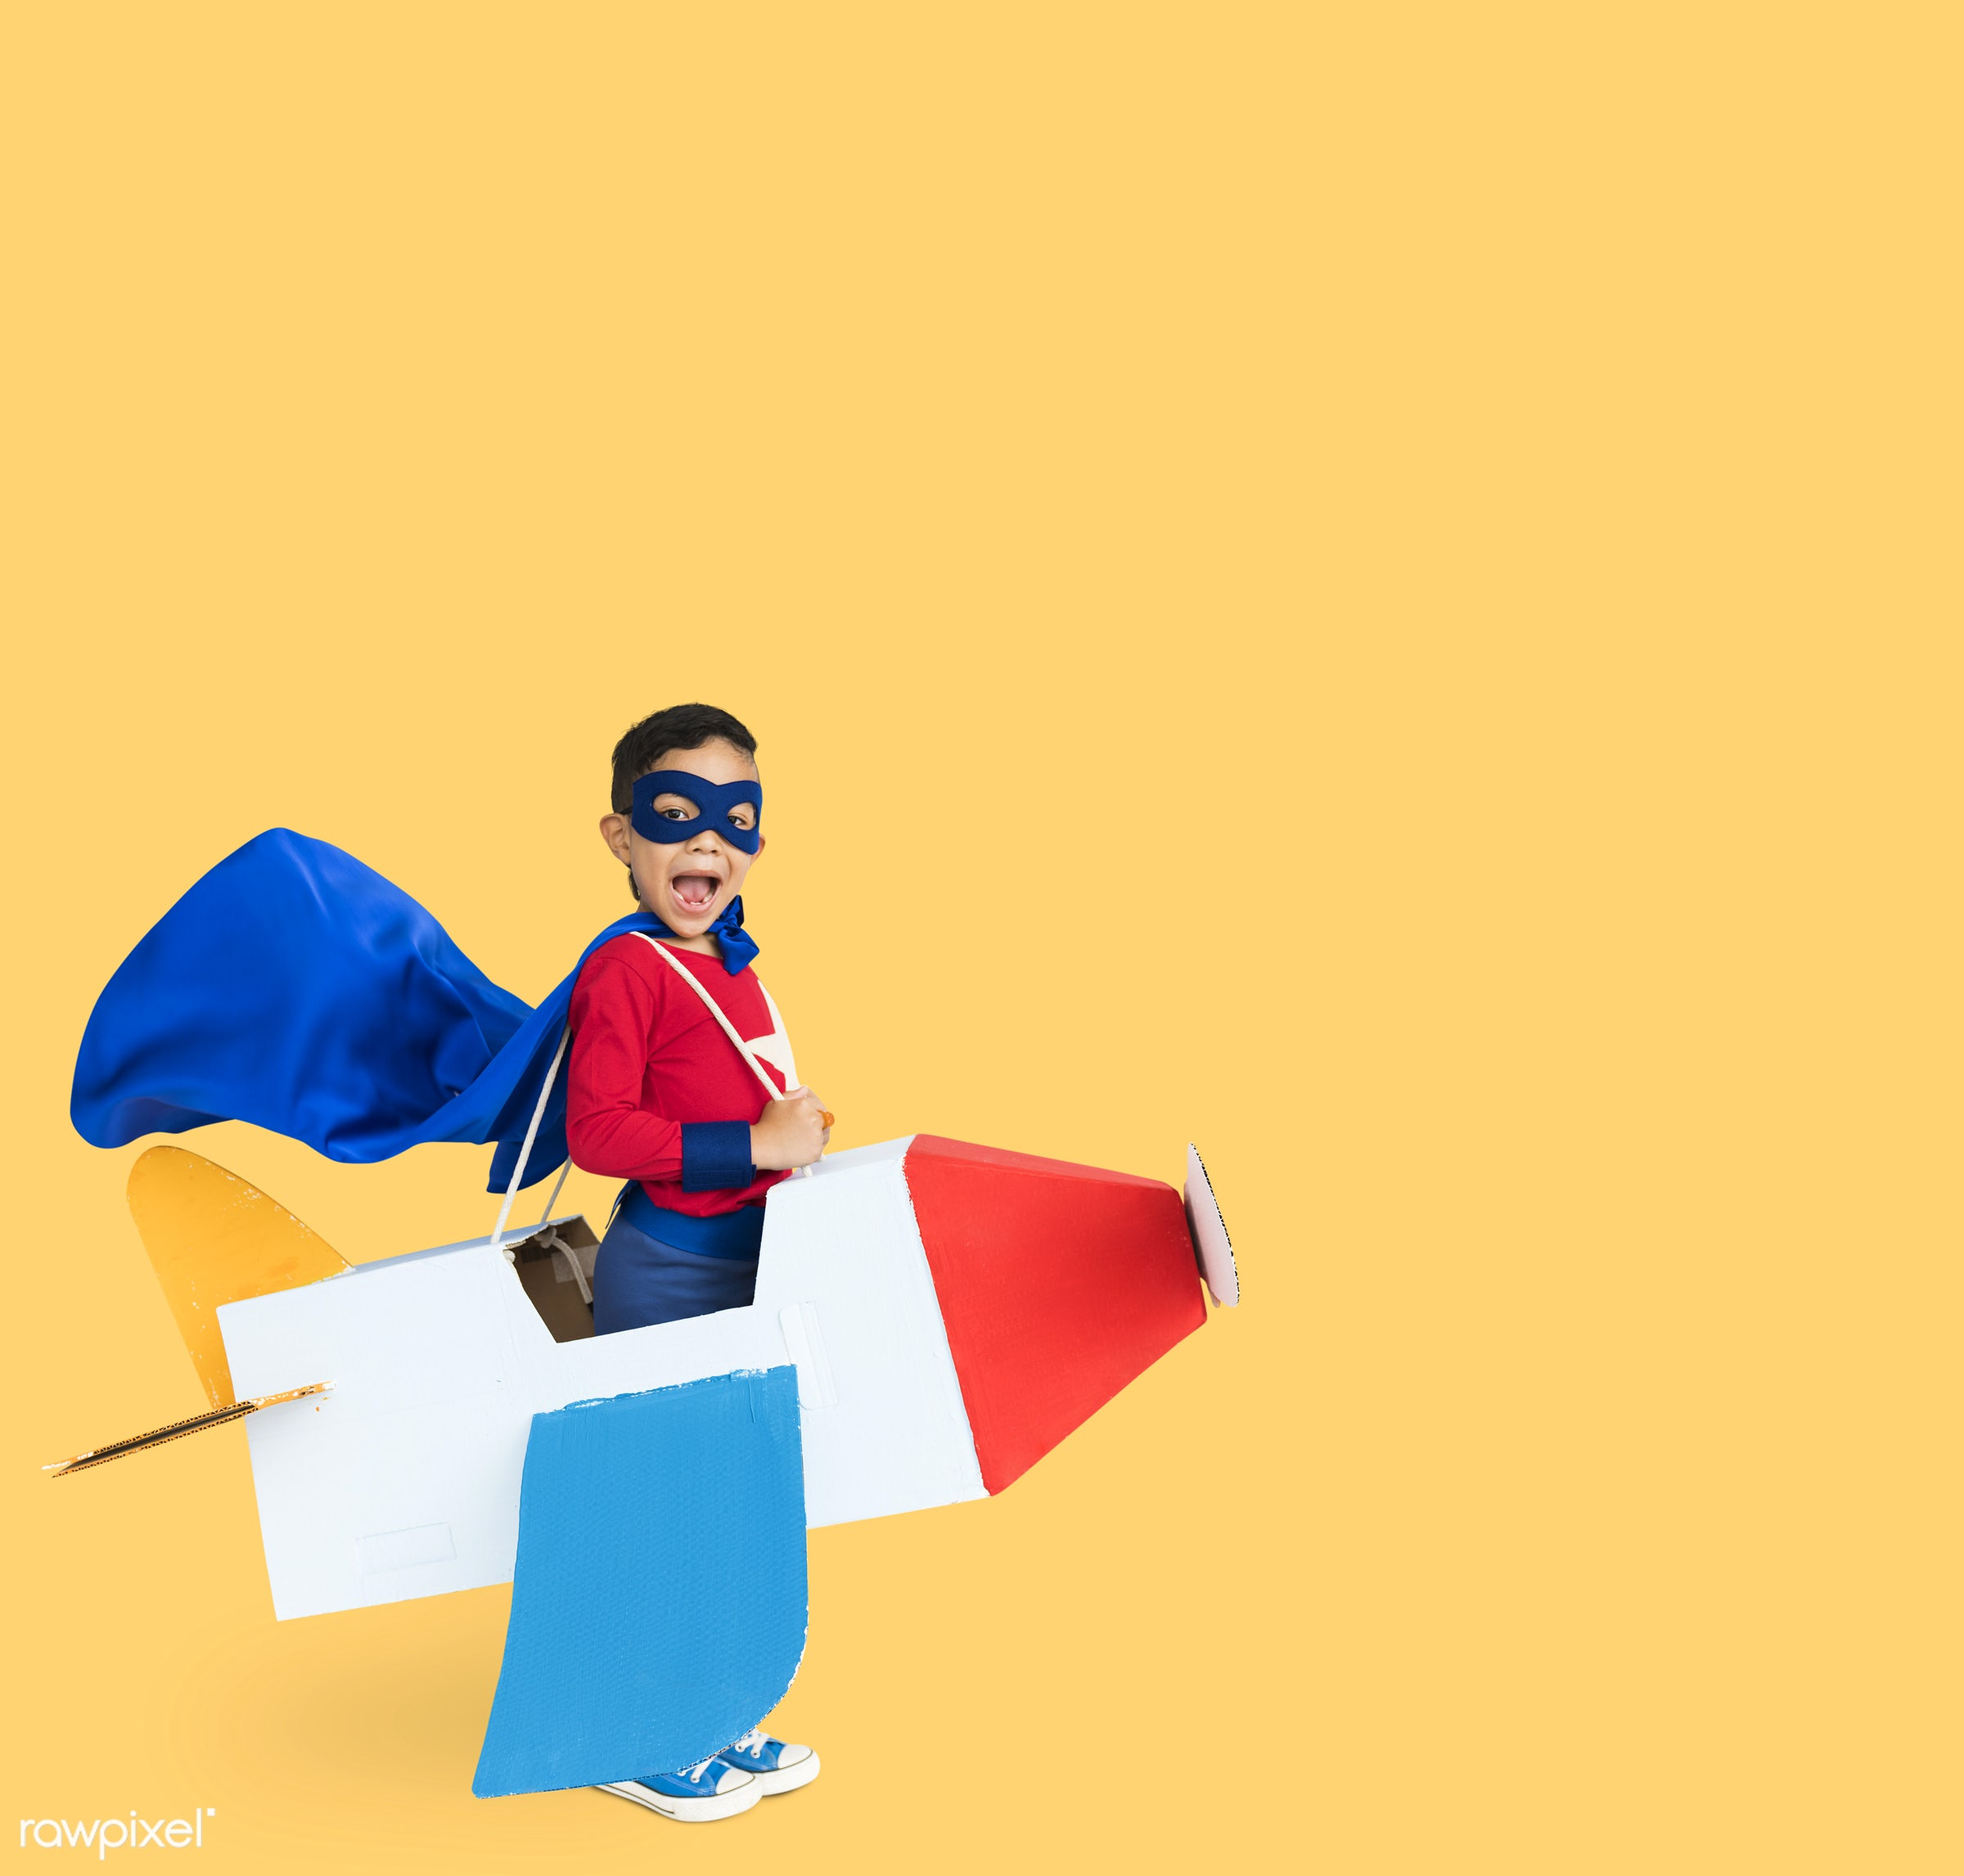 studio, expression, person, mask, yellow, people, kid, solo, childhood, smile, cheerful, smiling, isolated, airplane,...